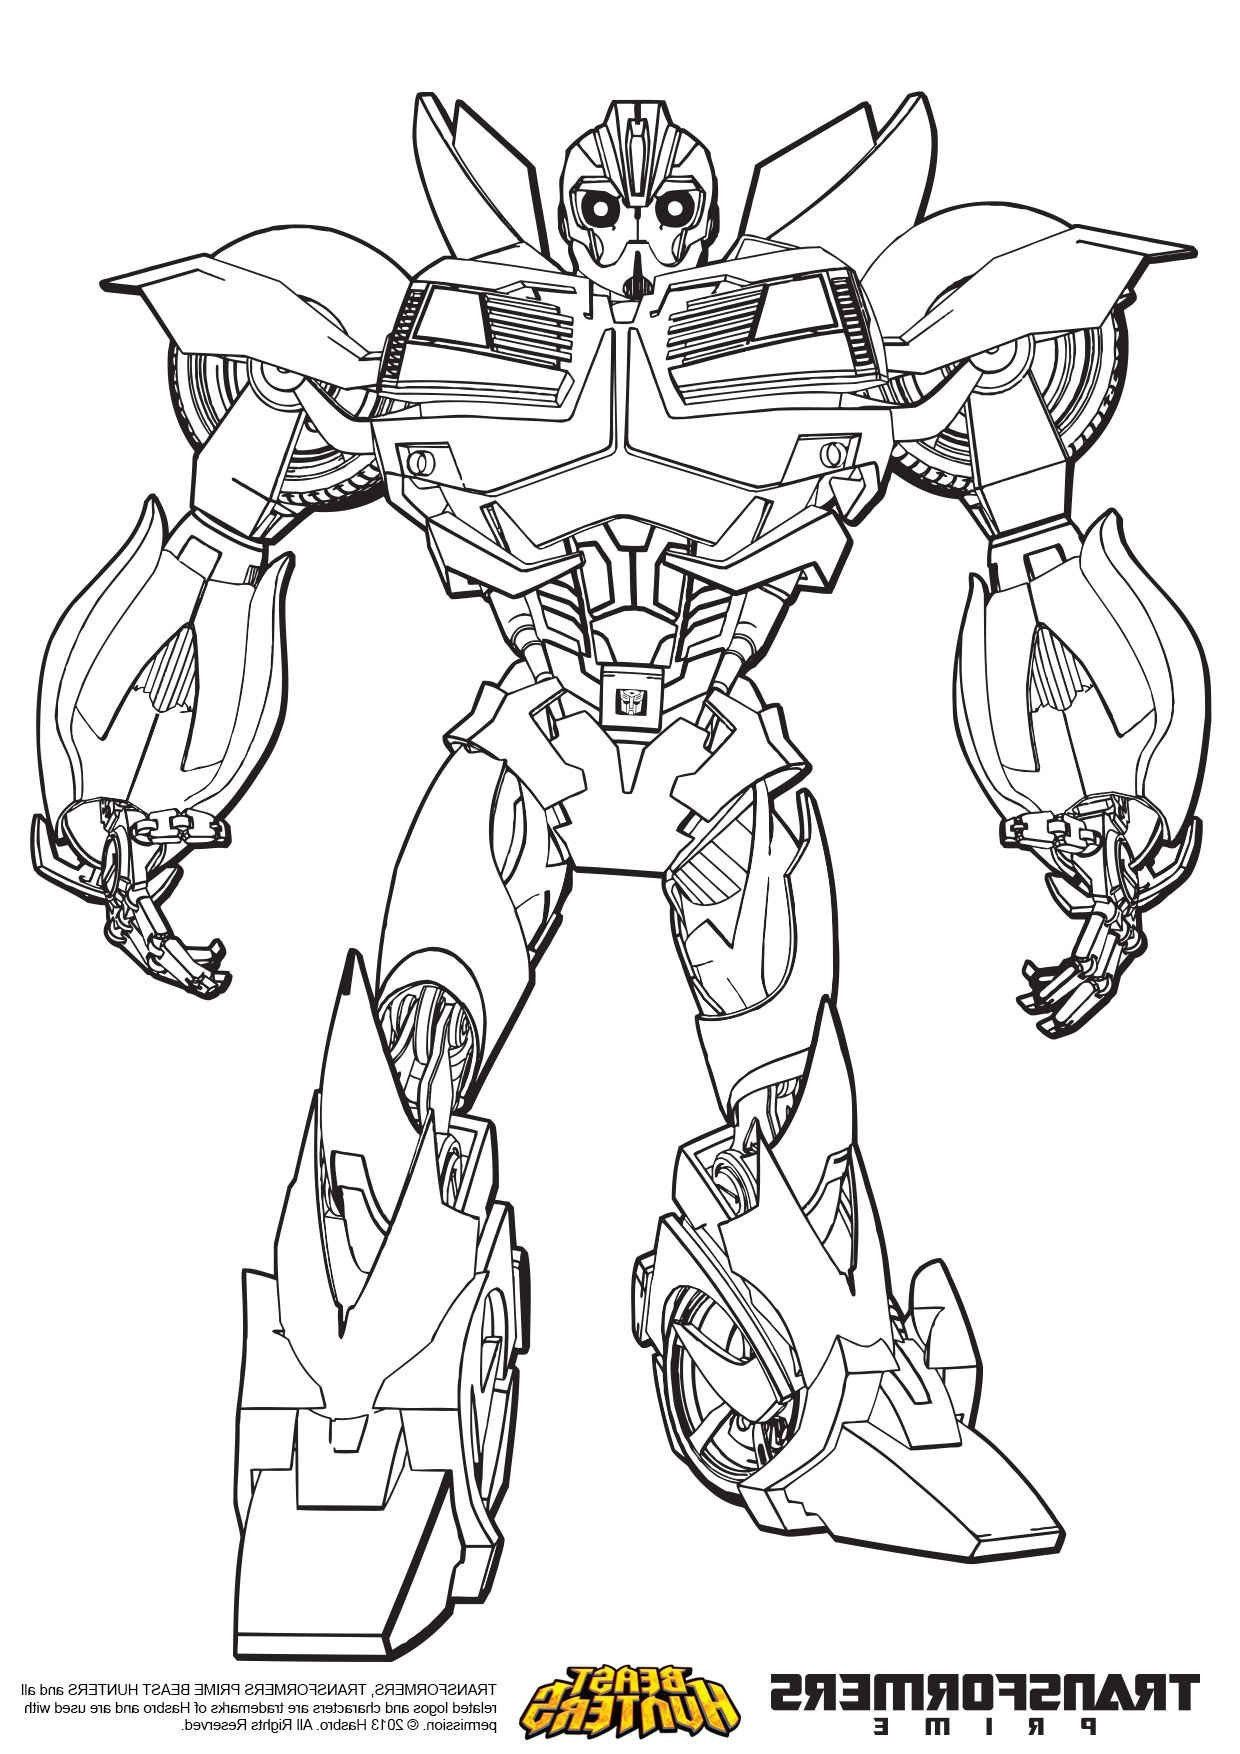 4 Bumblebee Transformer Coloring Page In